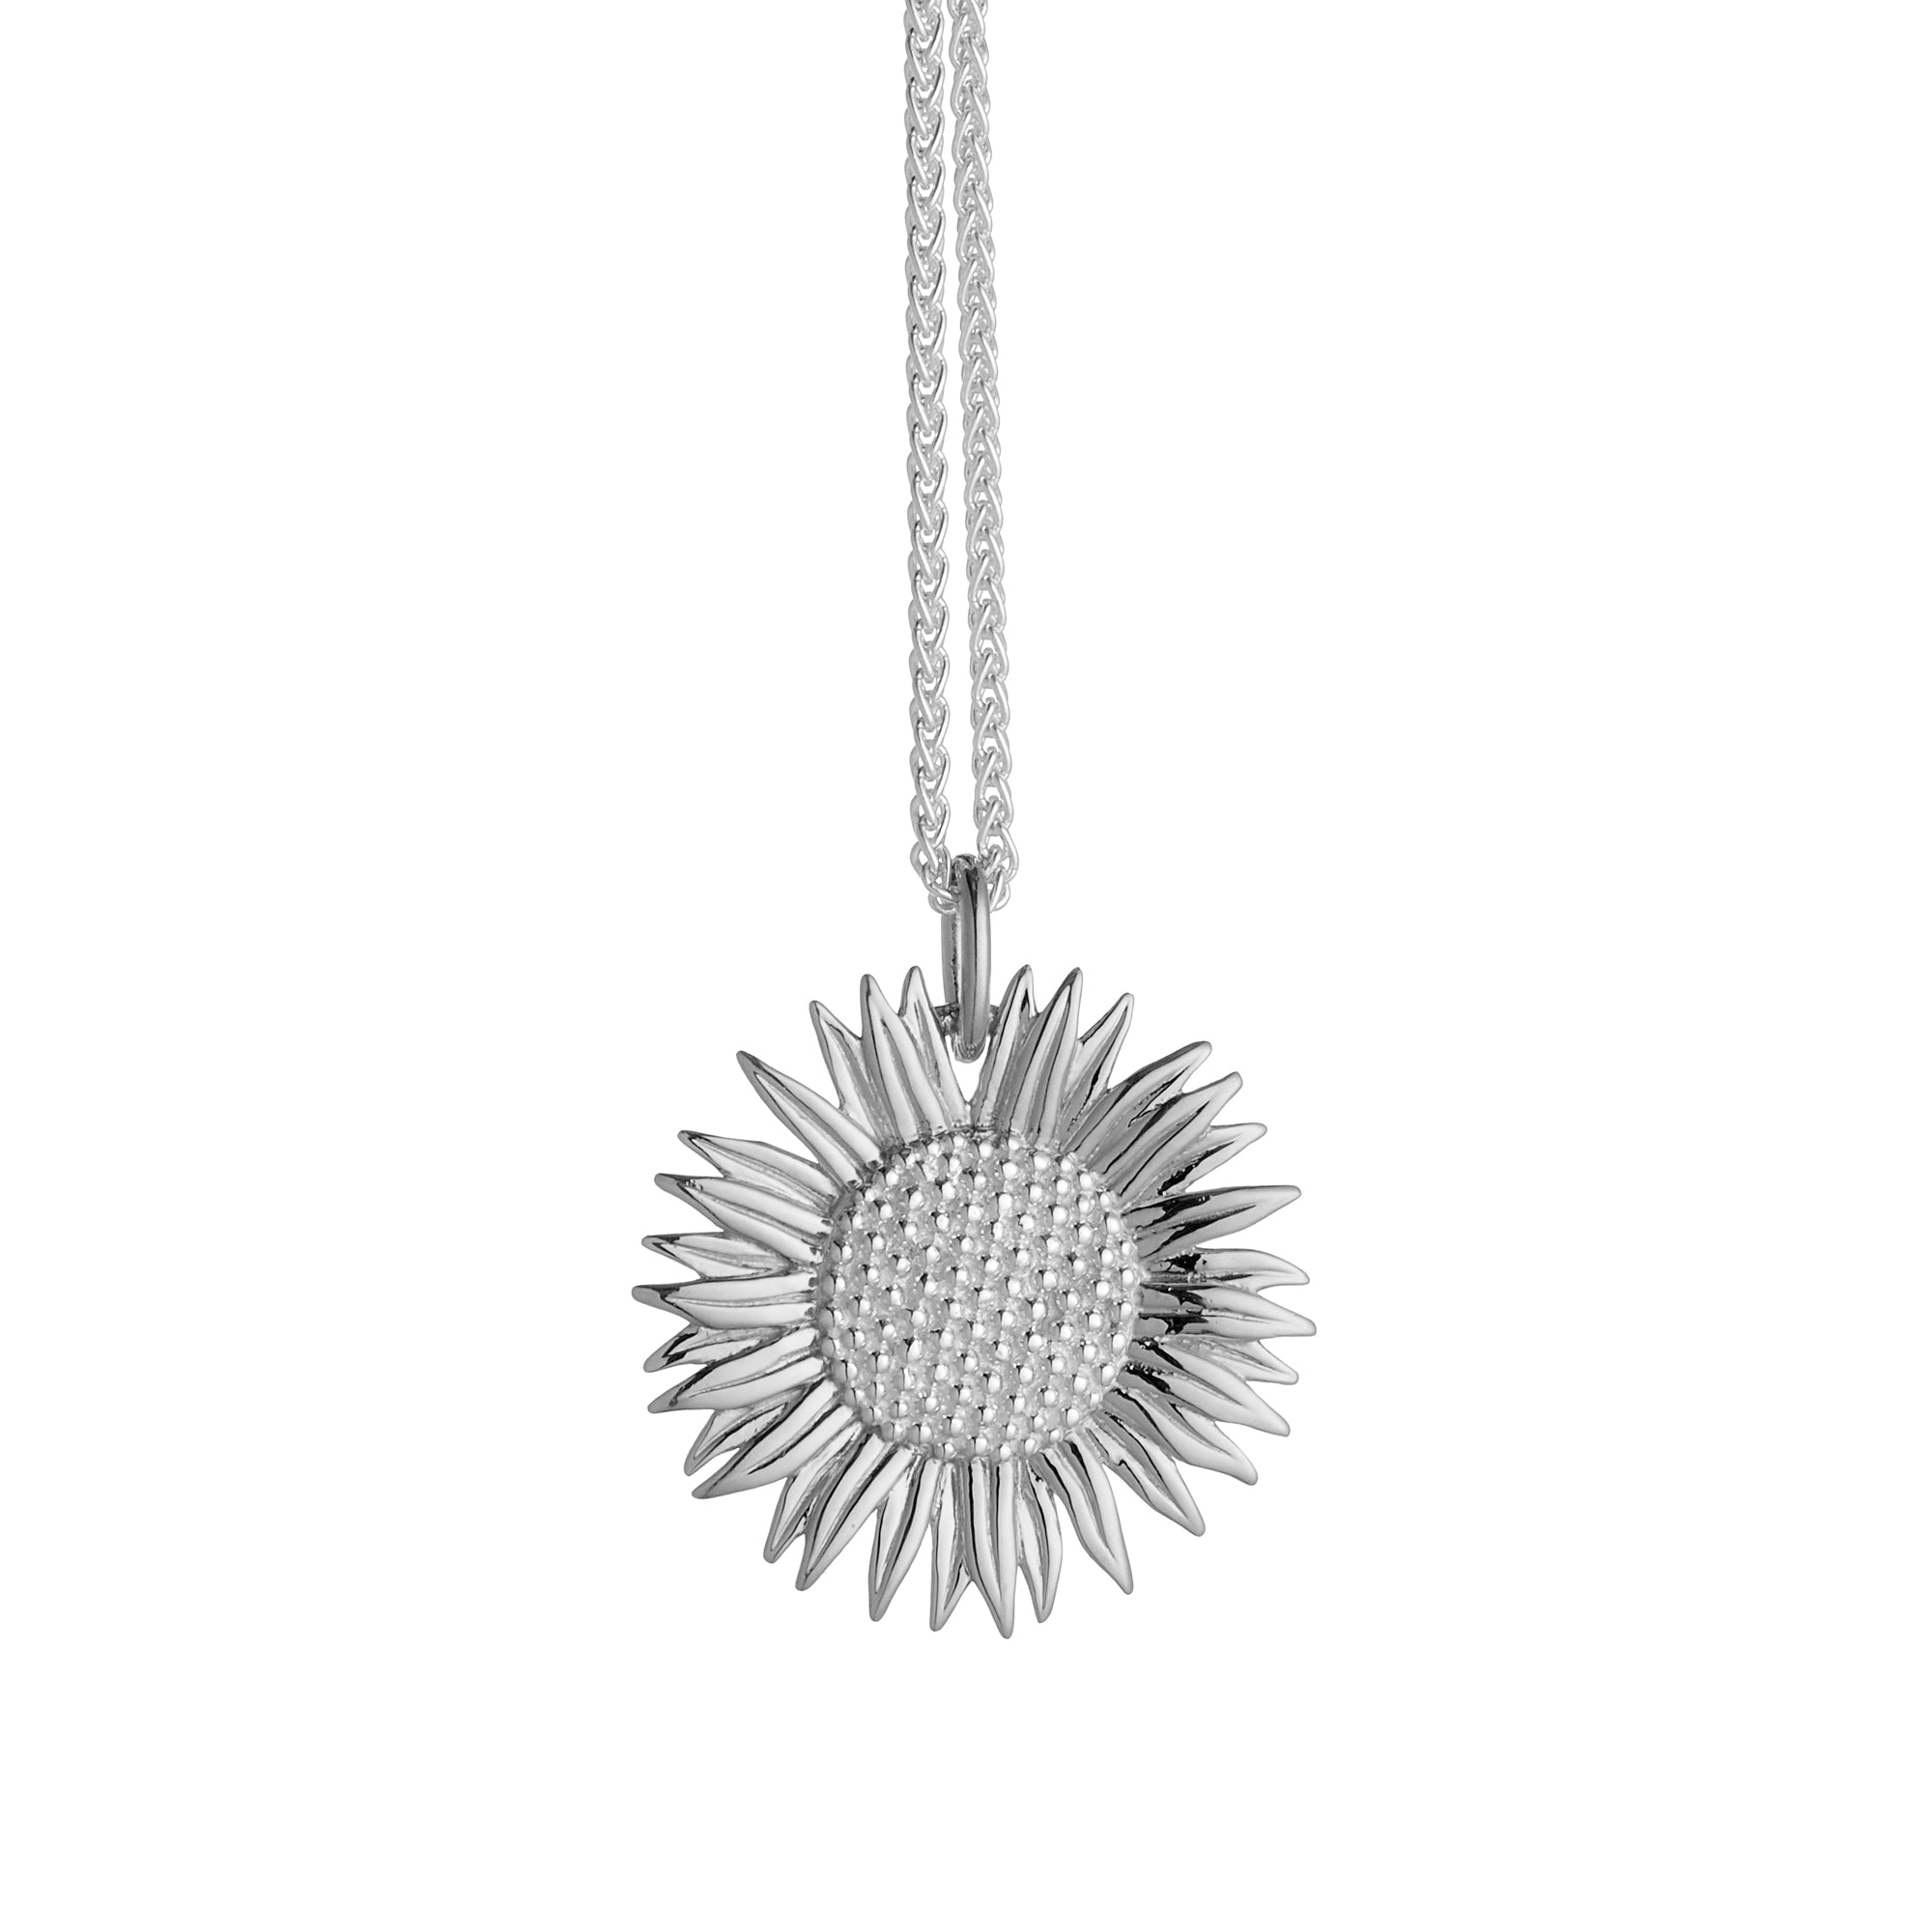 Sunflower Large Silver Necklace